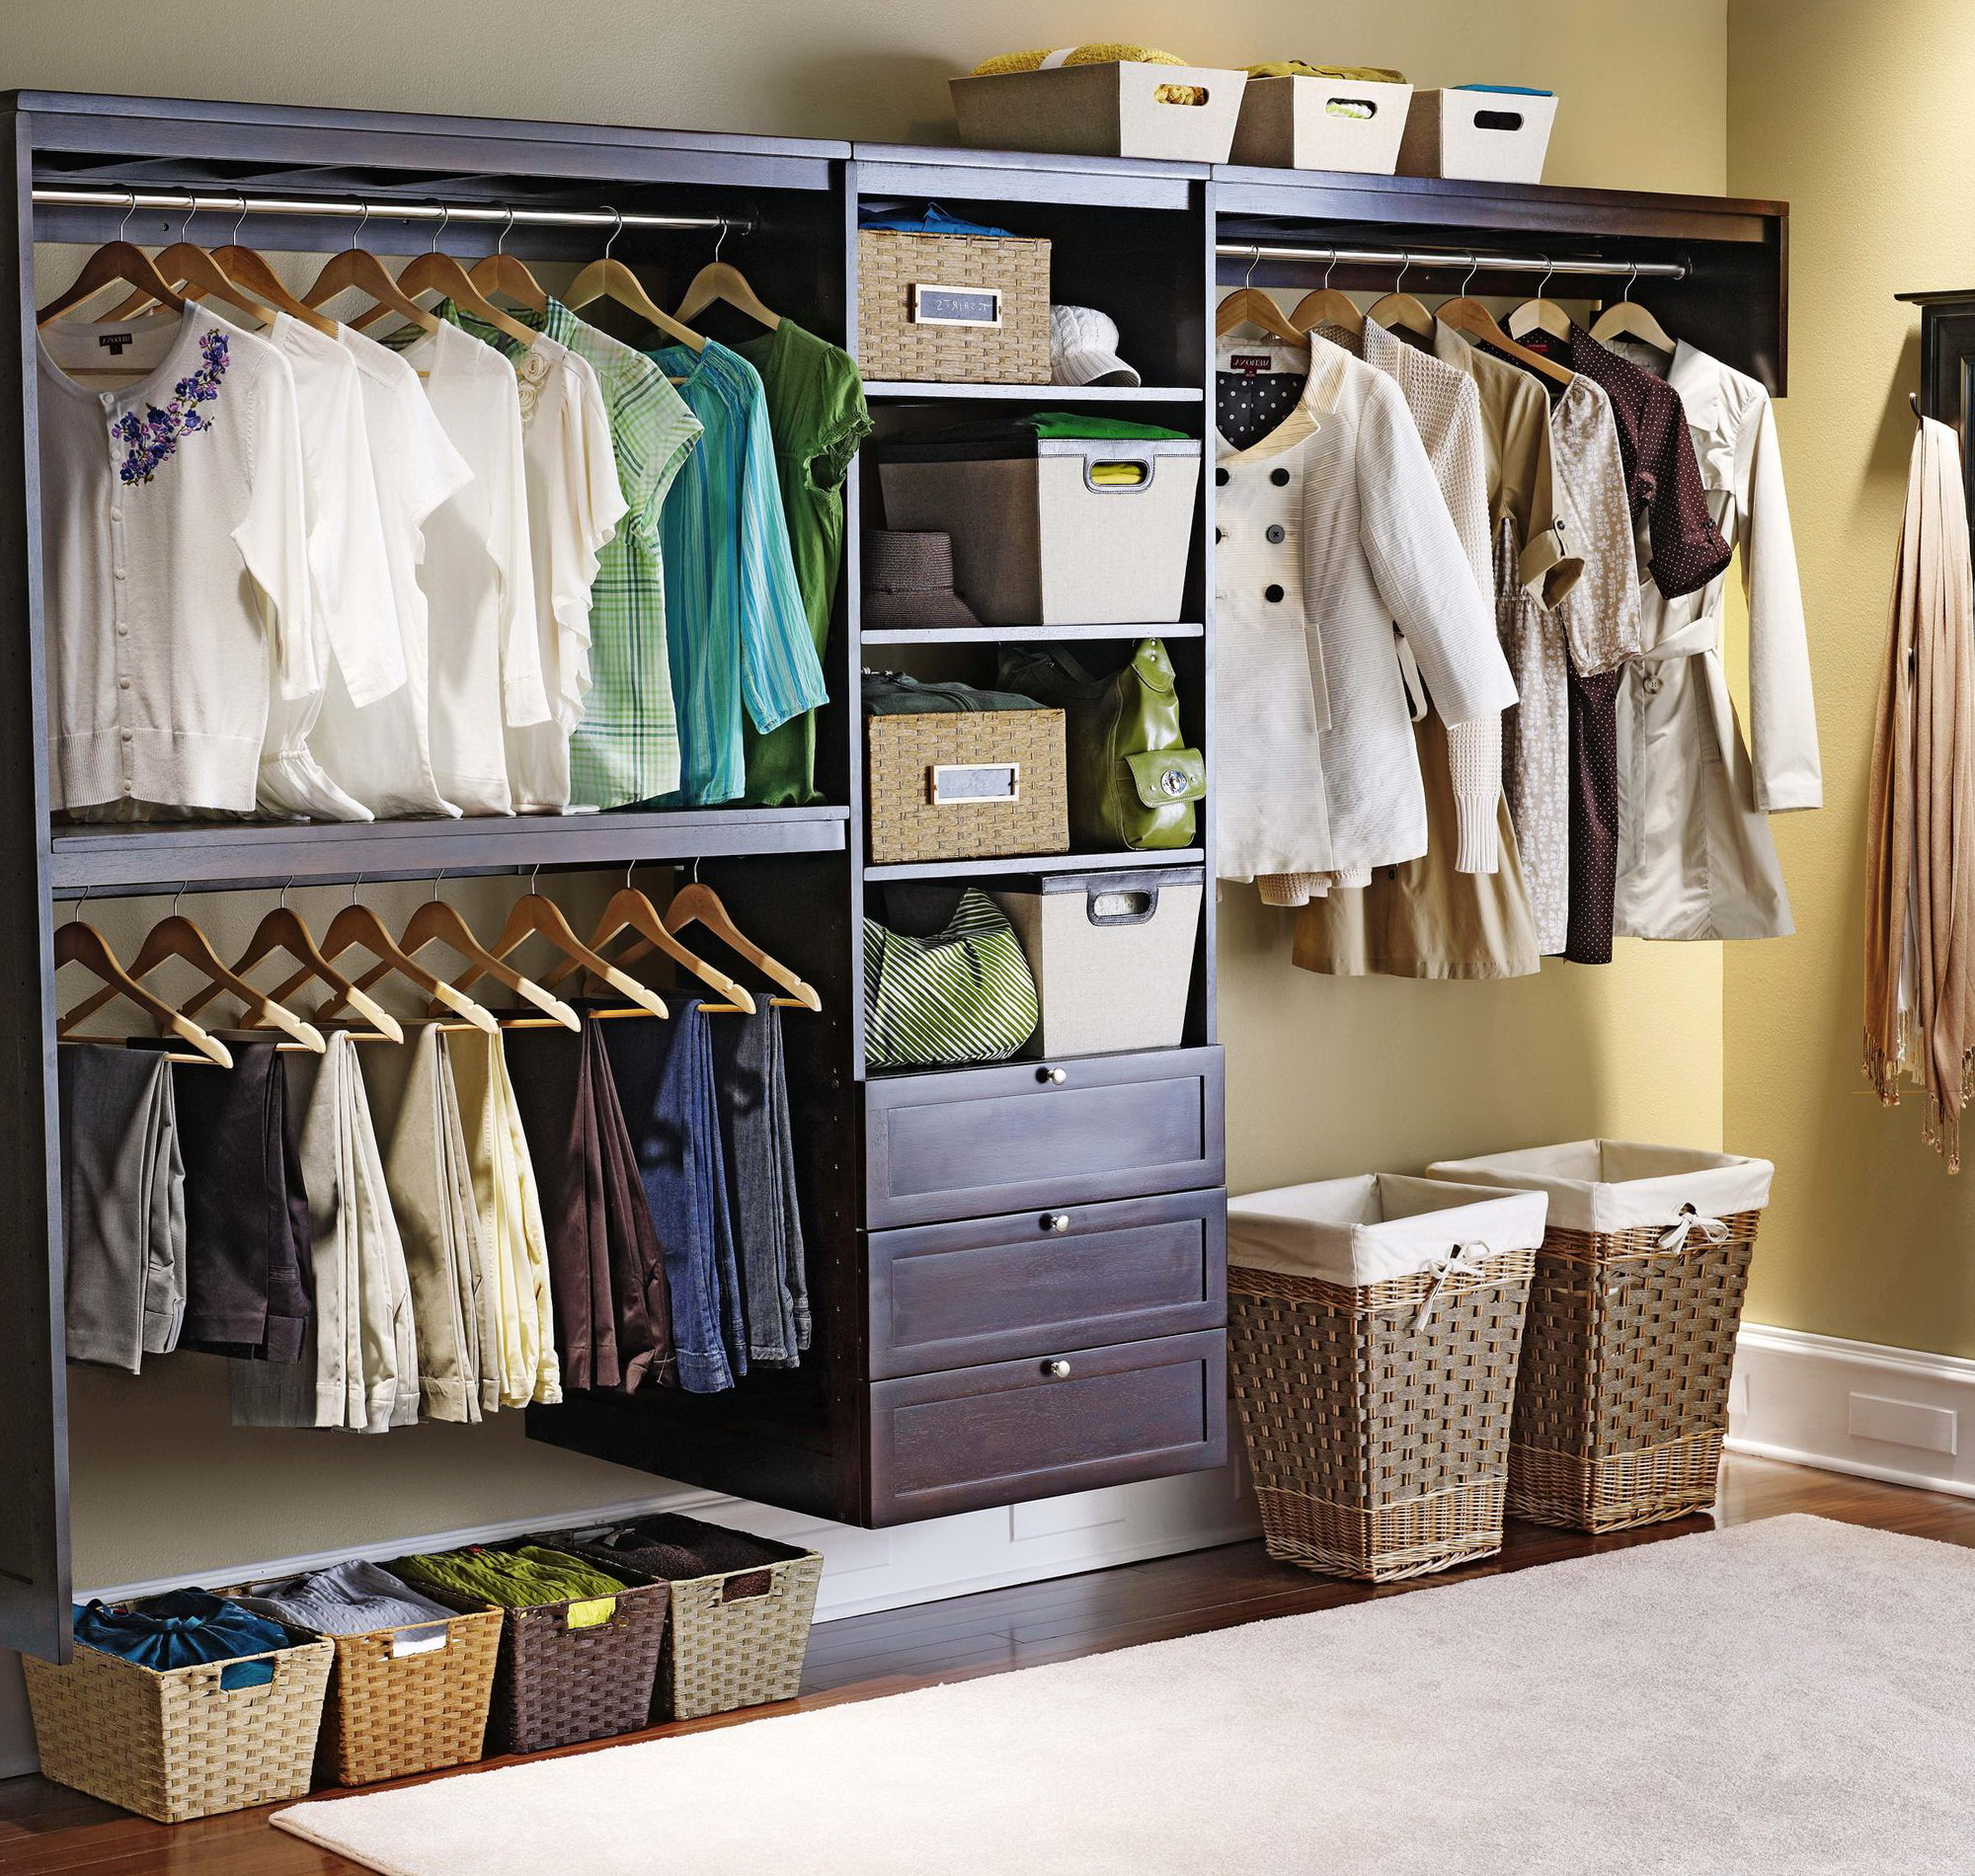 Allen And Roth Closet System Instructions Home Design Ideas